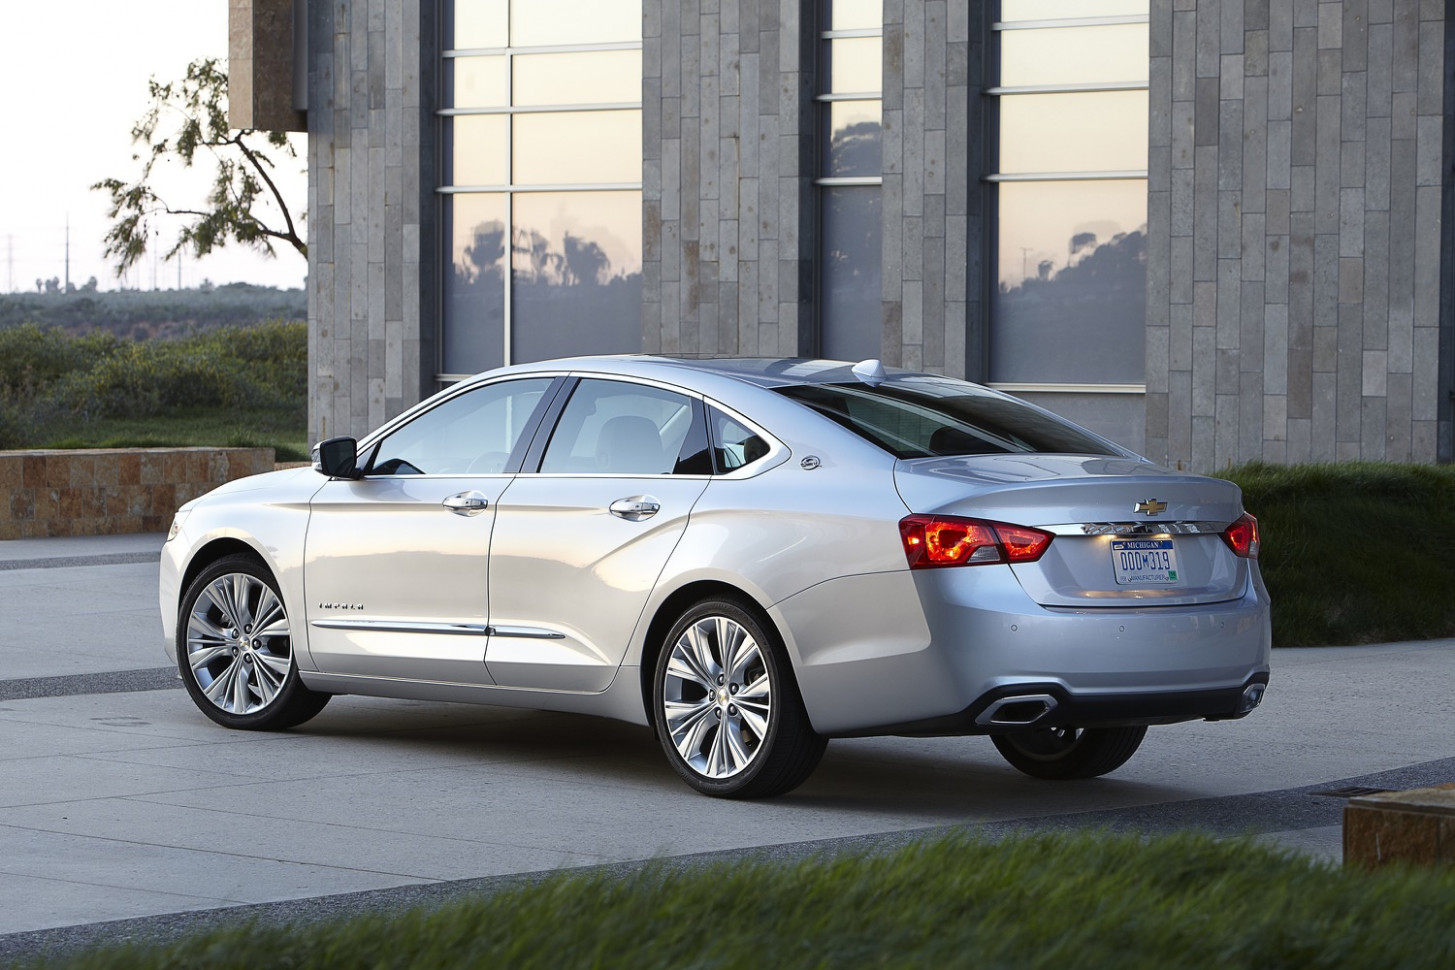 Chevrolet Discount For Impala Insignificant In July 8 | GM ..